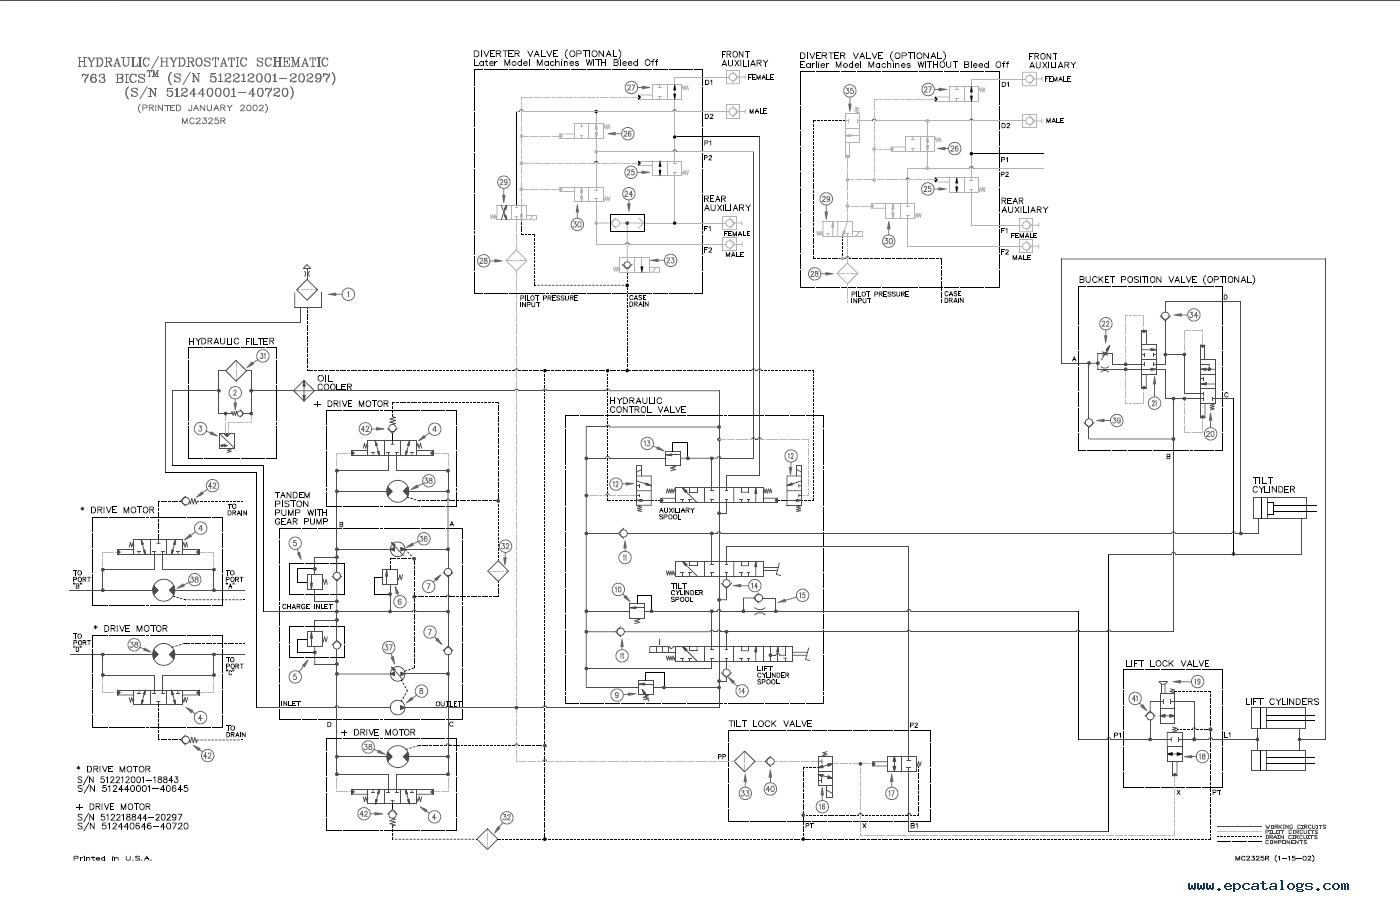 bobcat s130 wiring diagram wiring diagrambobcat 753 wiring diagram wiring diagram763 bobcat wiring diagram 18 11 fearless wonder de \\\\